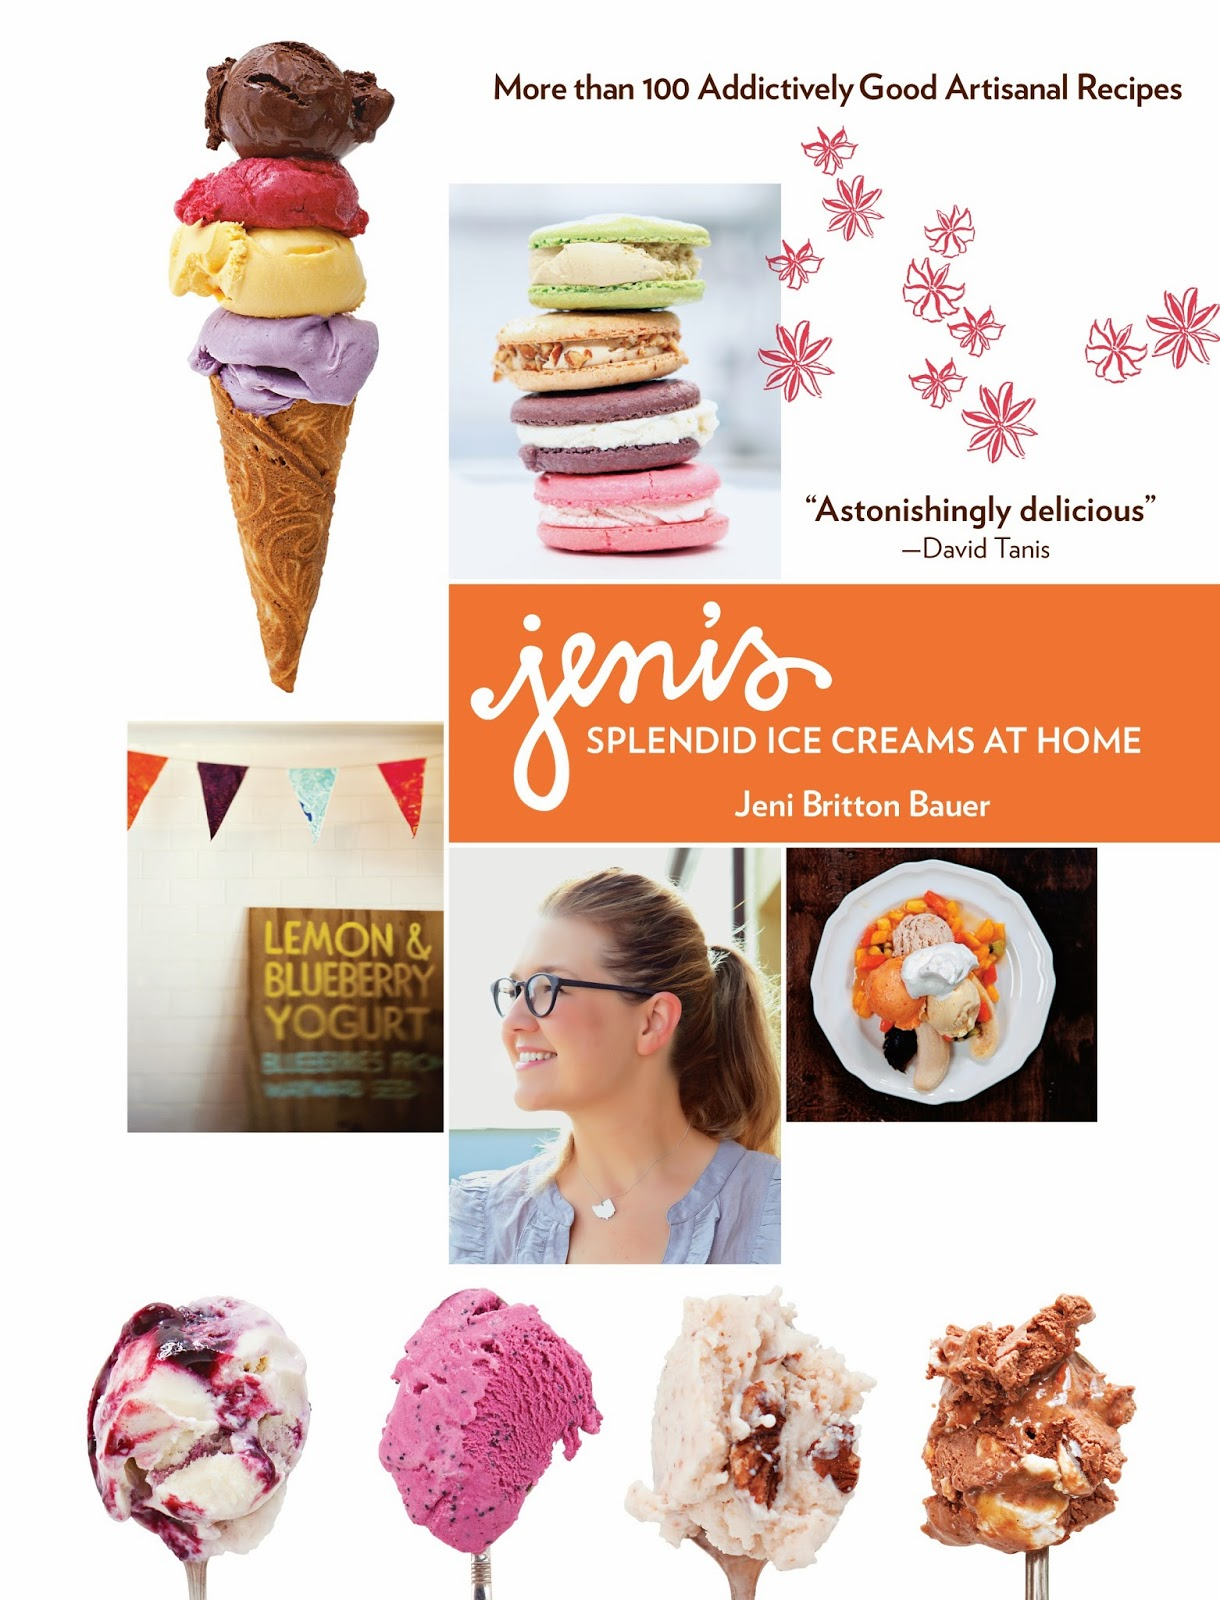 http://www.amazon.com/Jenis-Splendid-Ice-Creams-Home/dp/1579654363